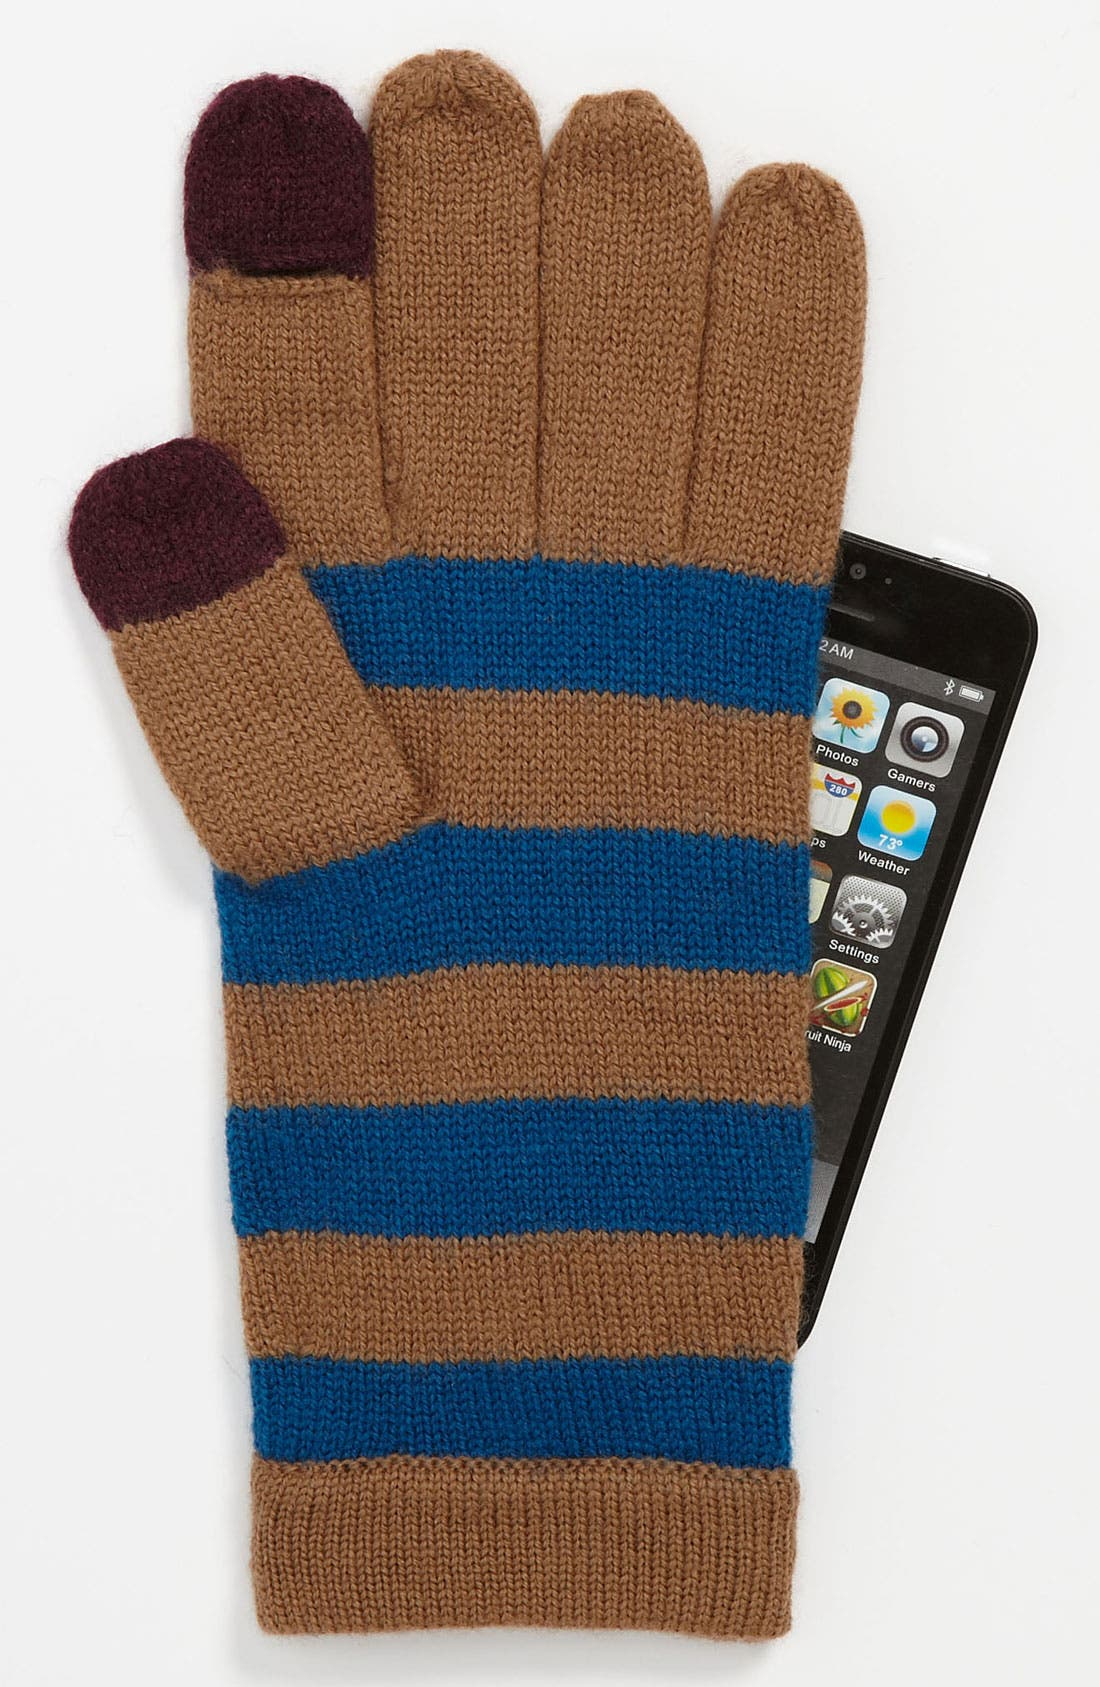 Main Image - MARC BY MARC JACOBS 'MBMJ' Merino Wool Tech Gloves